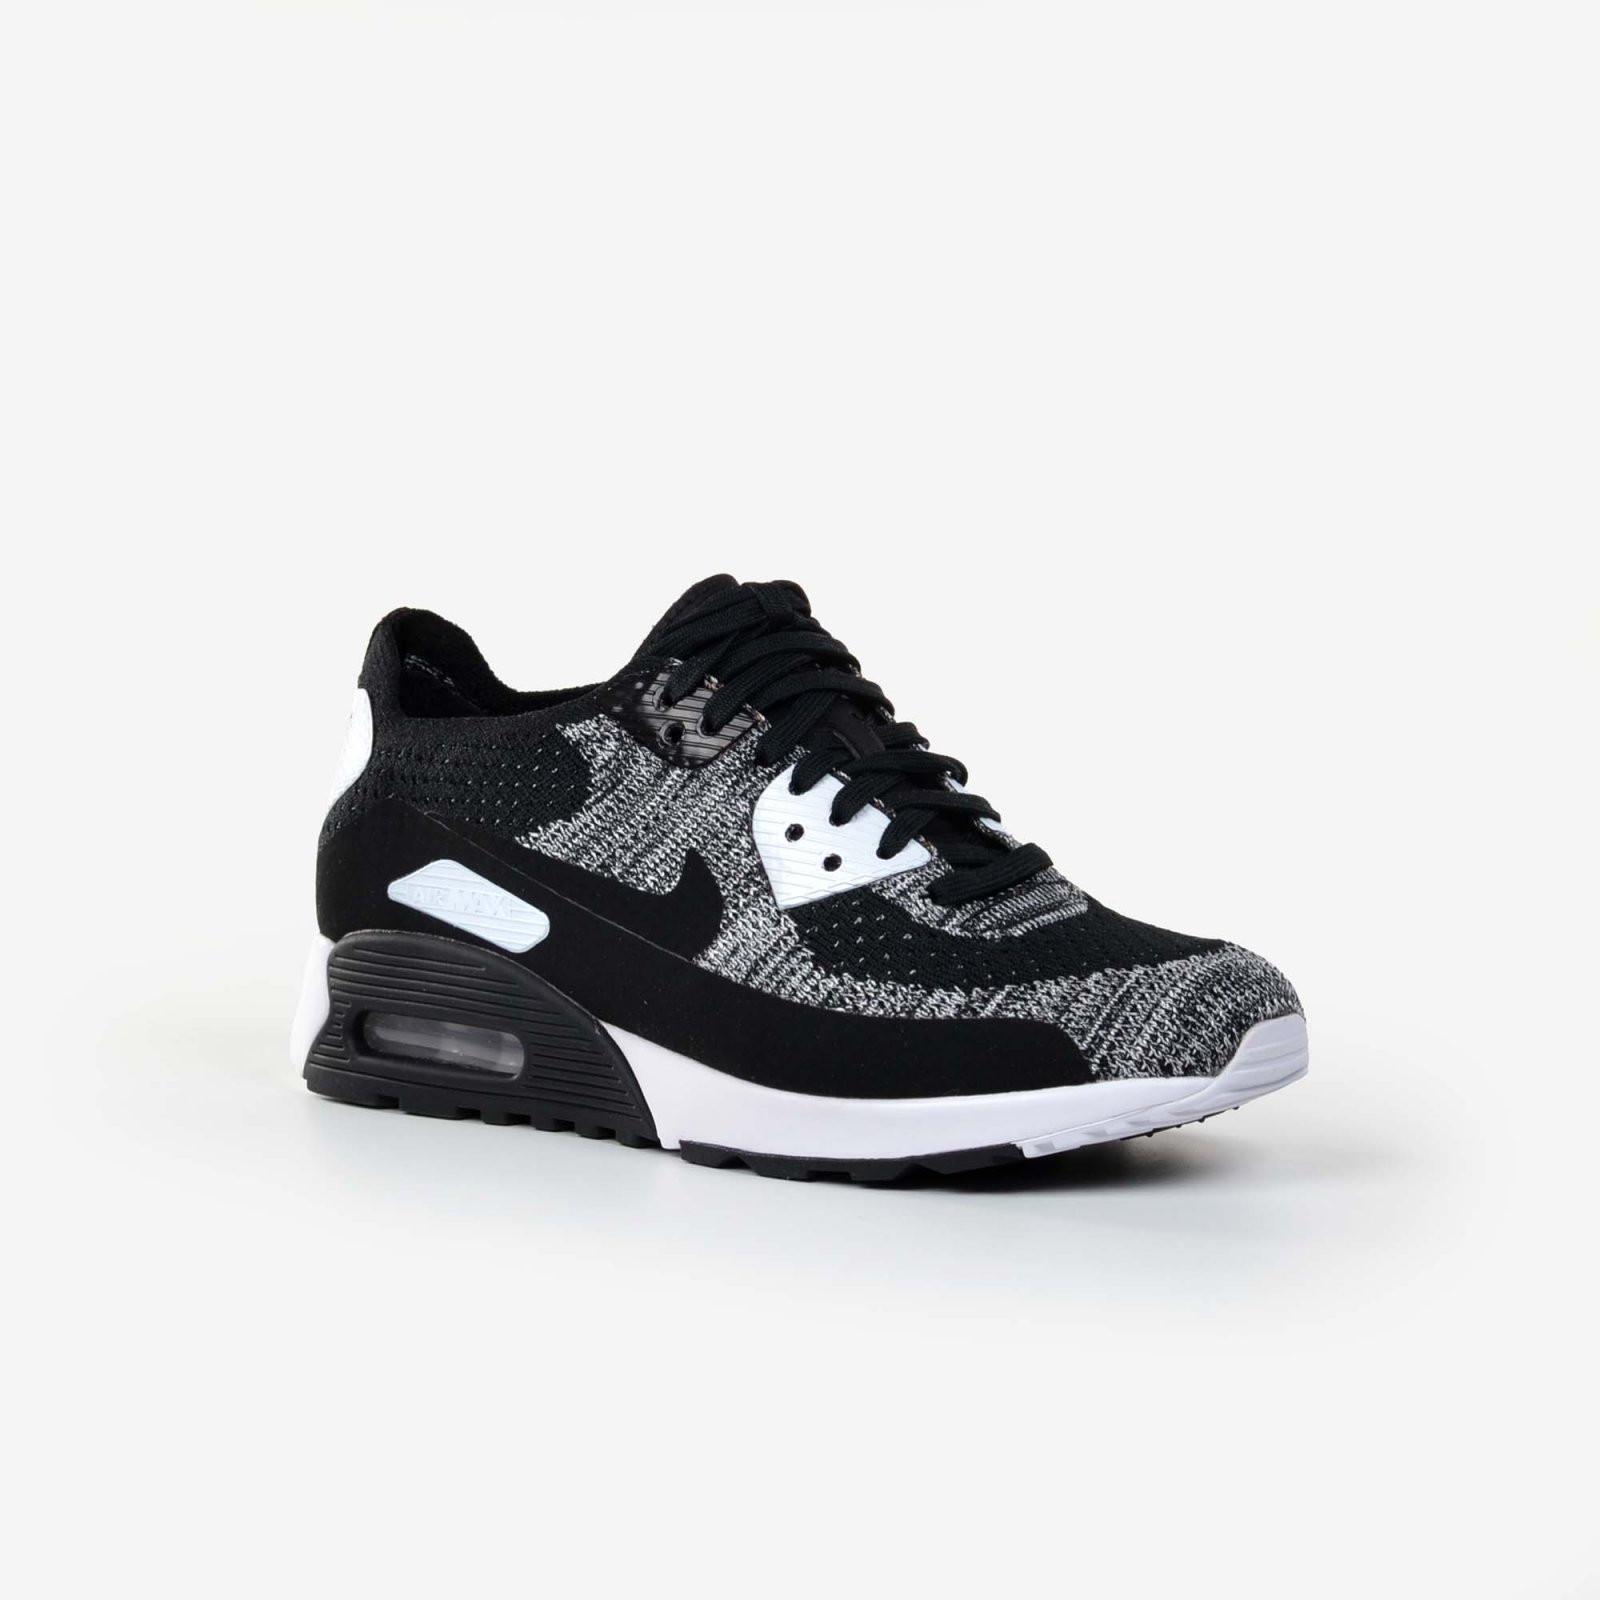 Nike Air max 90 Ultra 2.0 SE | Black | Sneakers | 876005 003